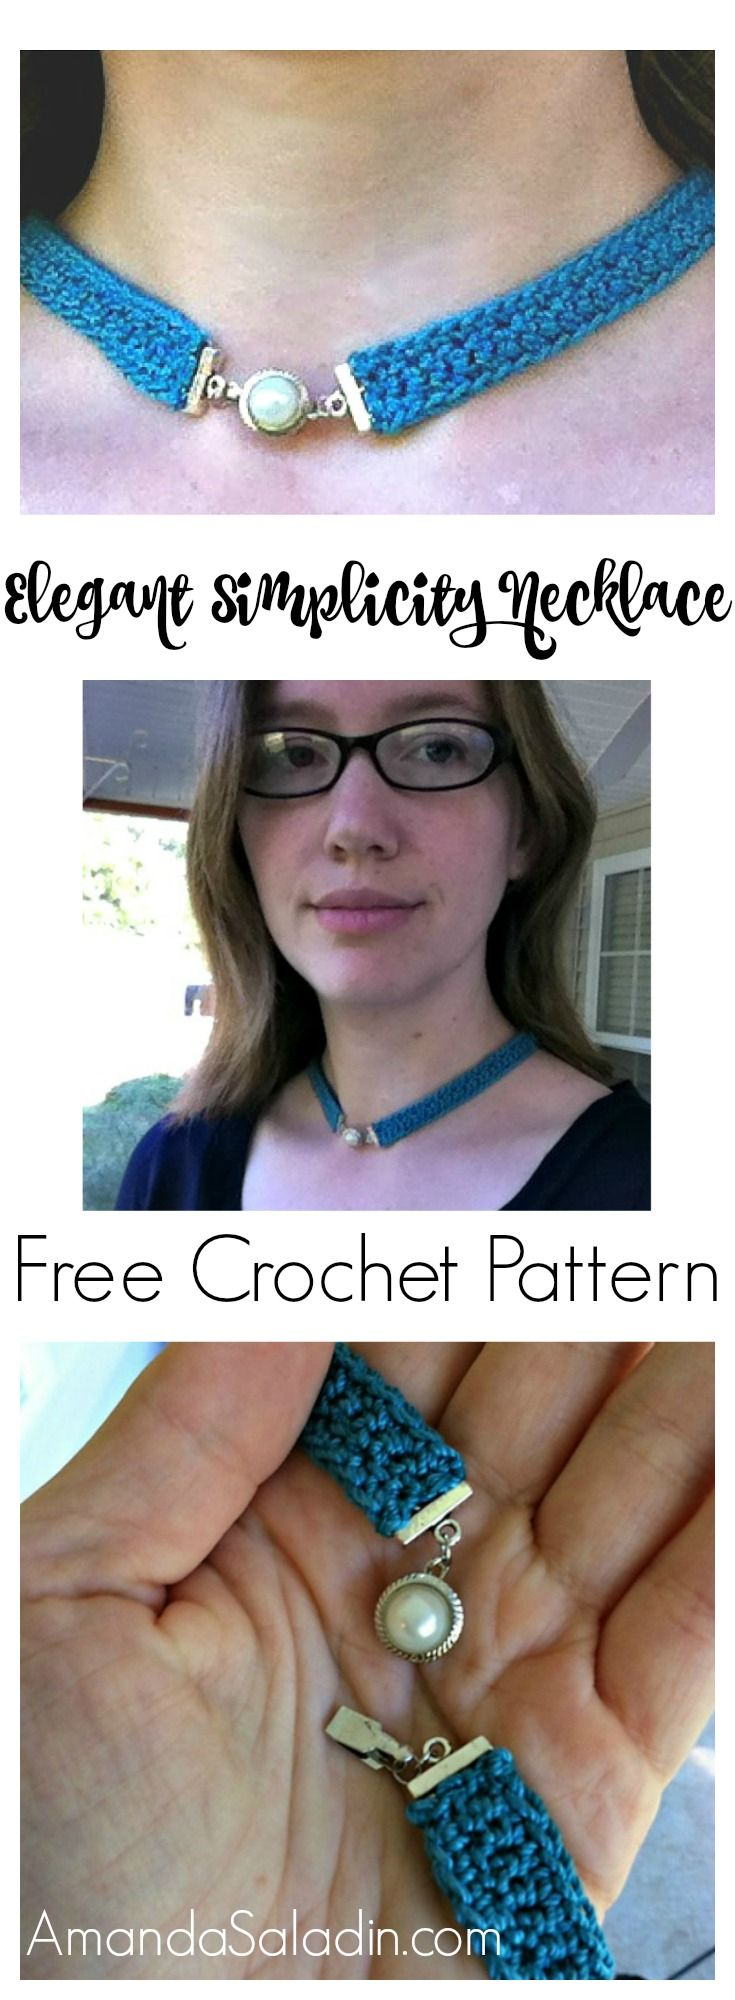 Free Easy Crochet Pattern - Elegant Simplicity Necklace